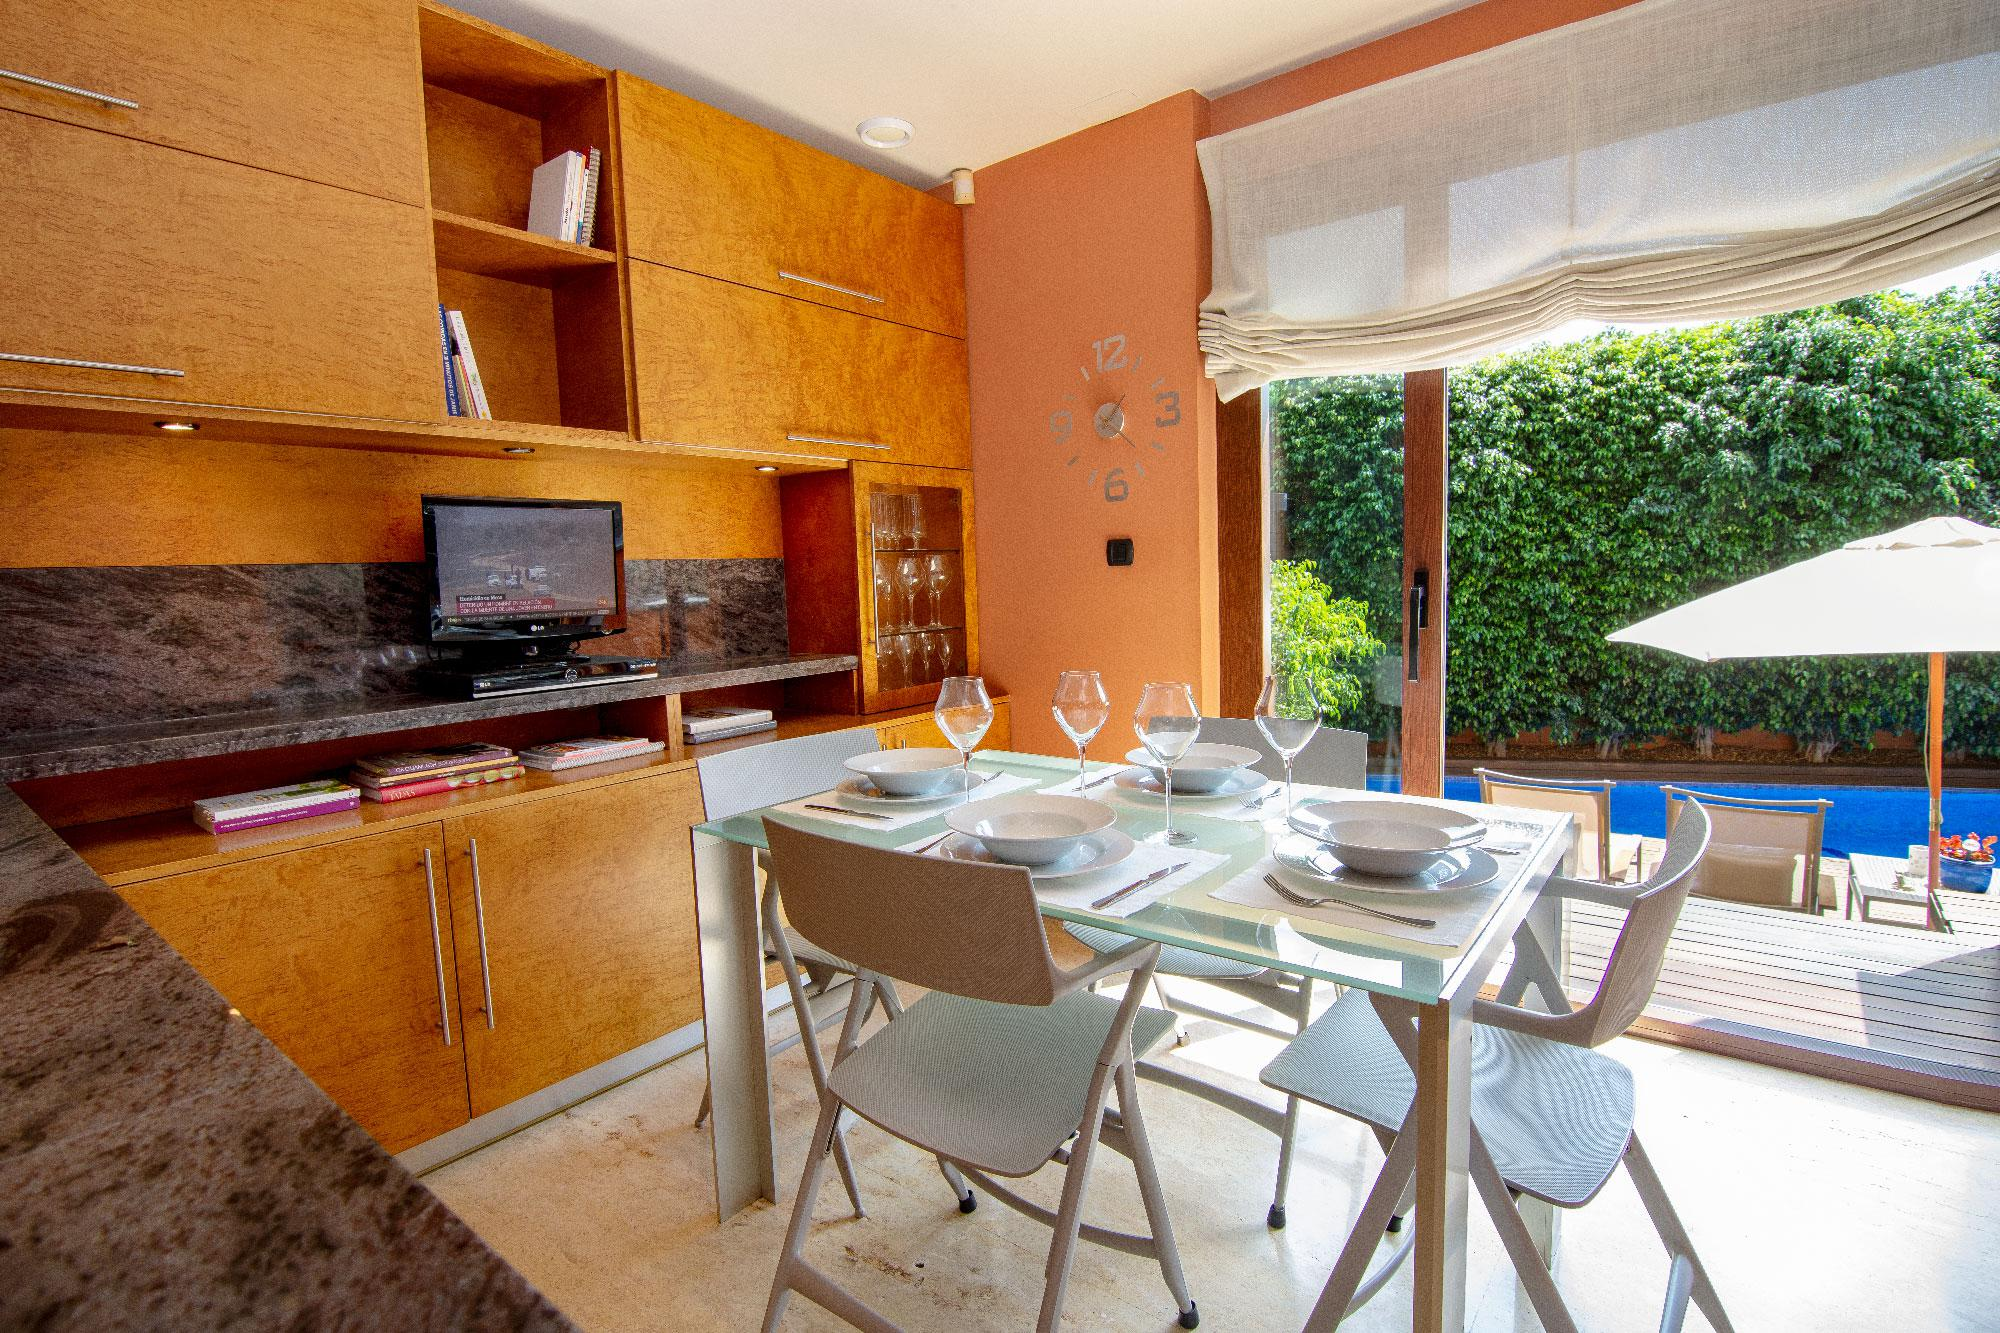 214424 House for sale in Les Corts, Pedralbes 6